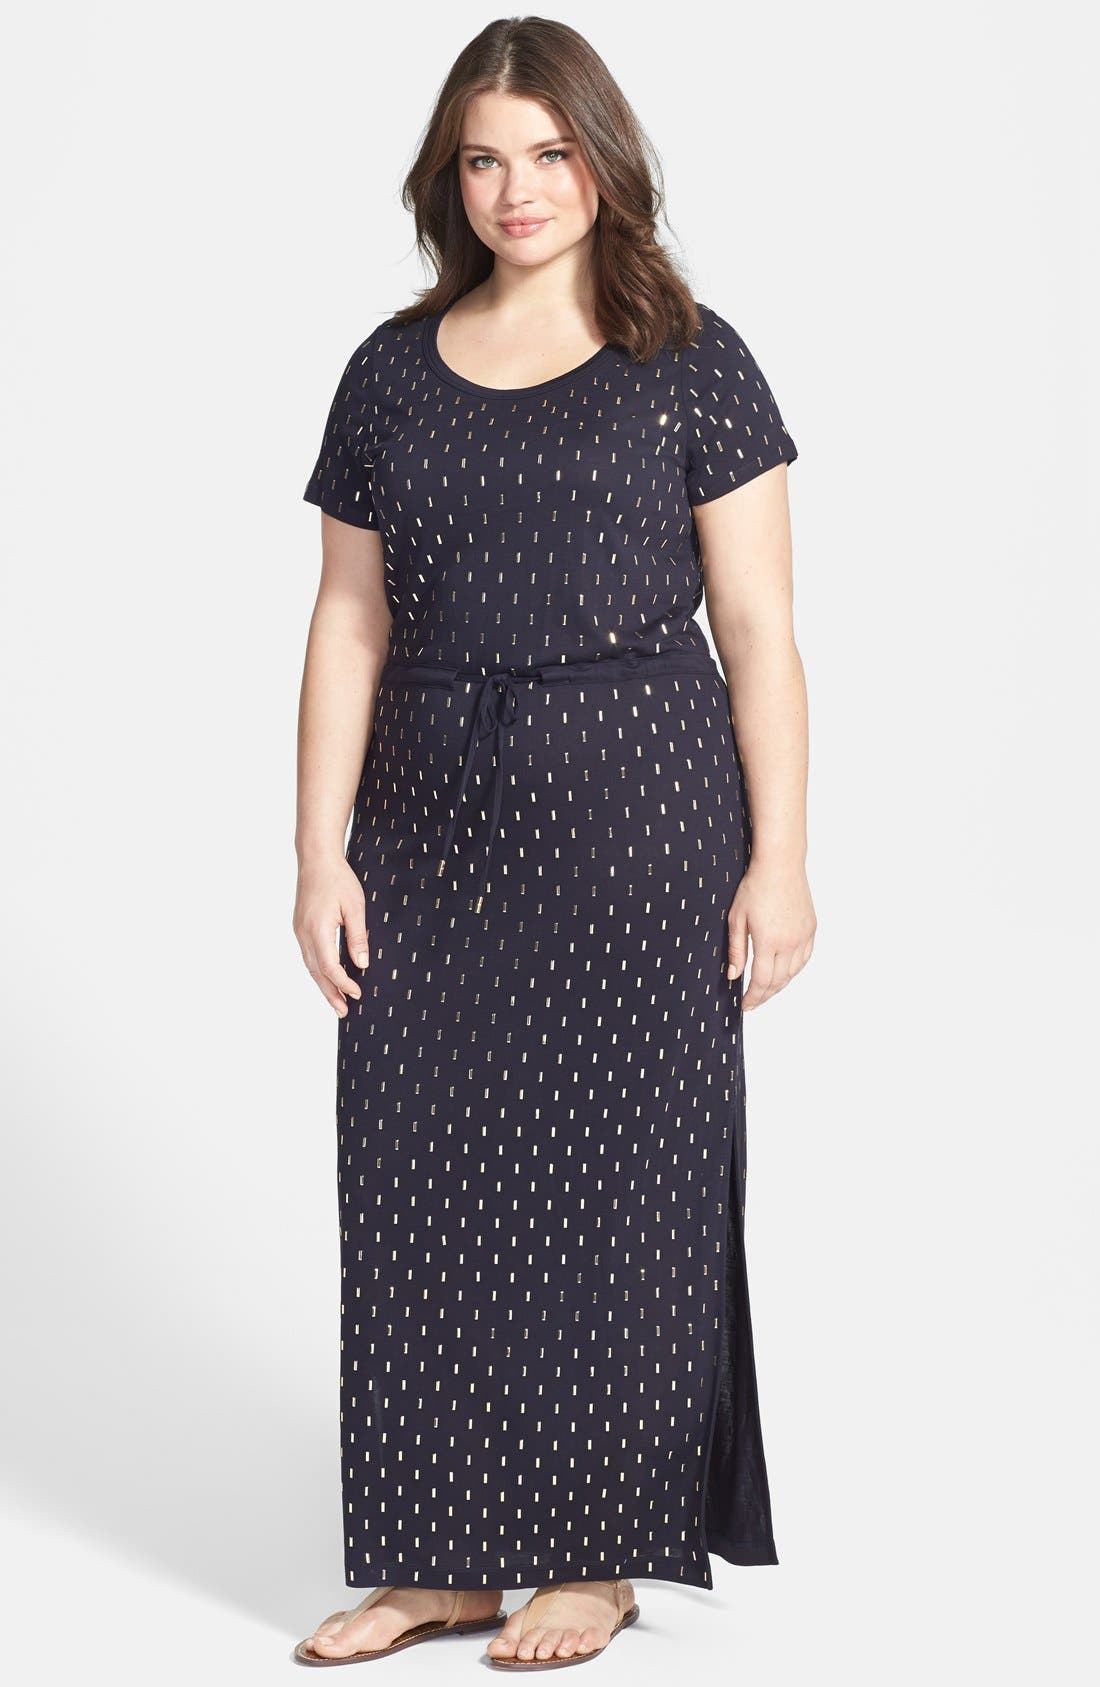 Alternate Image 1 Selected - MICHAEL Michael Kors Studded Drawstring Waist Maxi Dress (Plus Size)